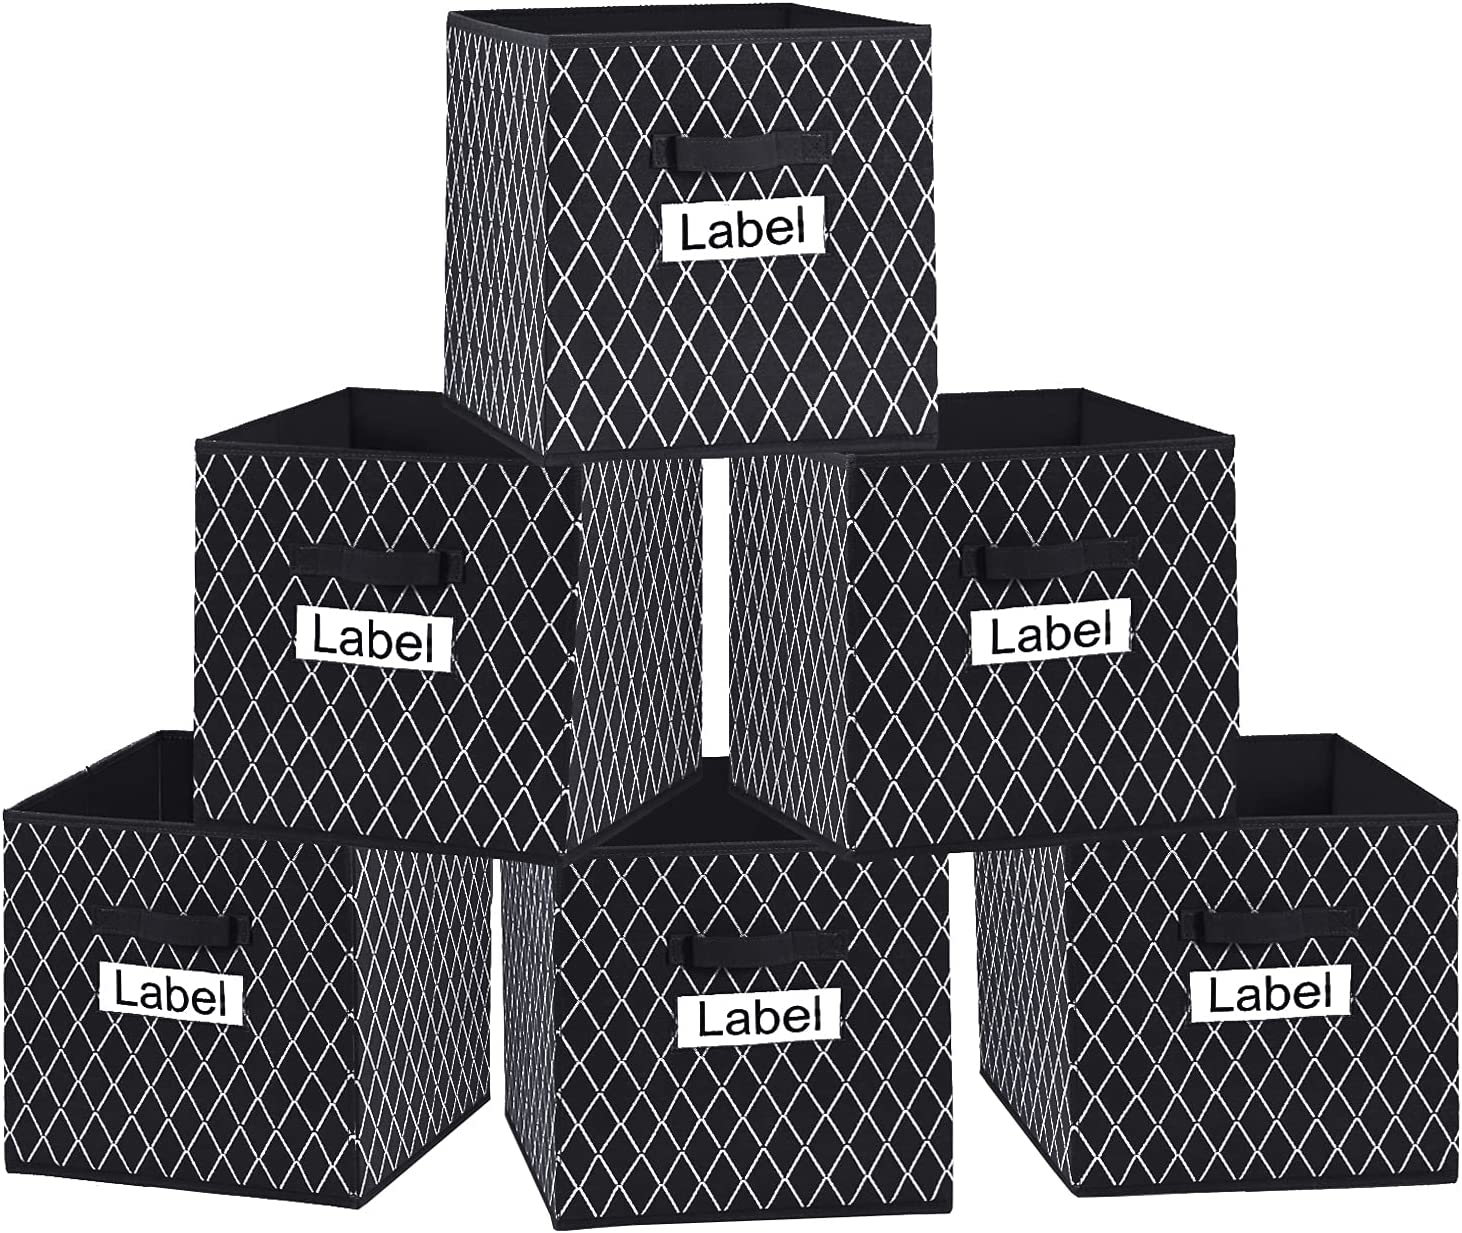 VERONLY Cube Storage Bins 13x13 - Large Foldable Toy Boxes Baskets Container Organizer with Label Window and Durable Handles for Pantry,Shelf,Nursery,Playroom,Closet and Office,Set of 6 (Black)